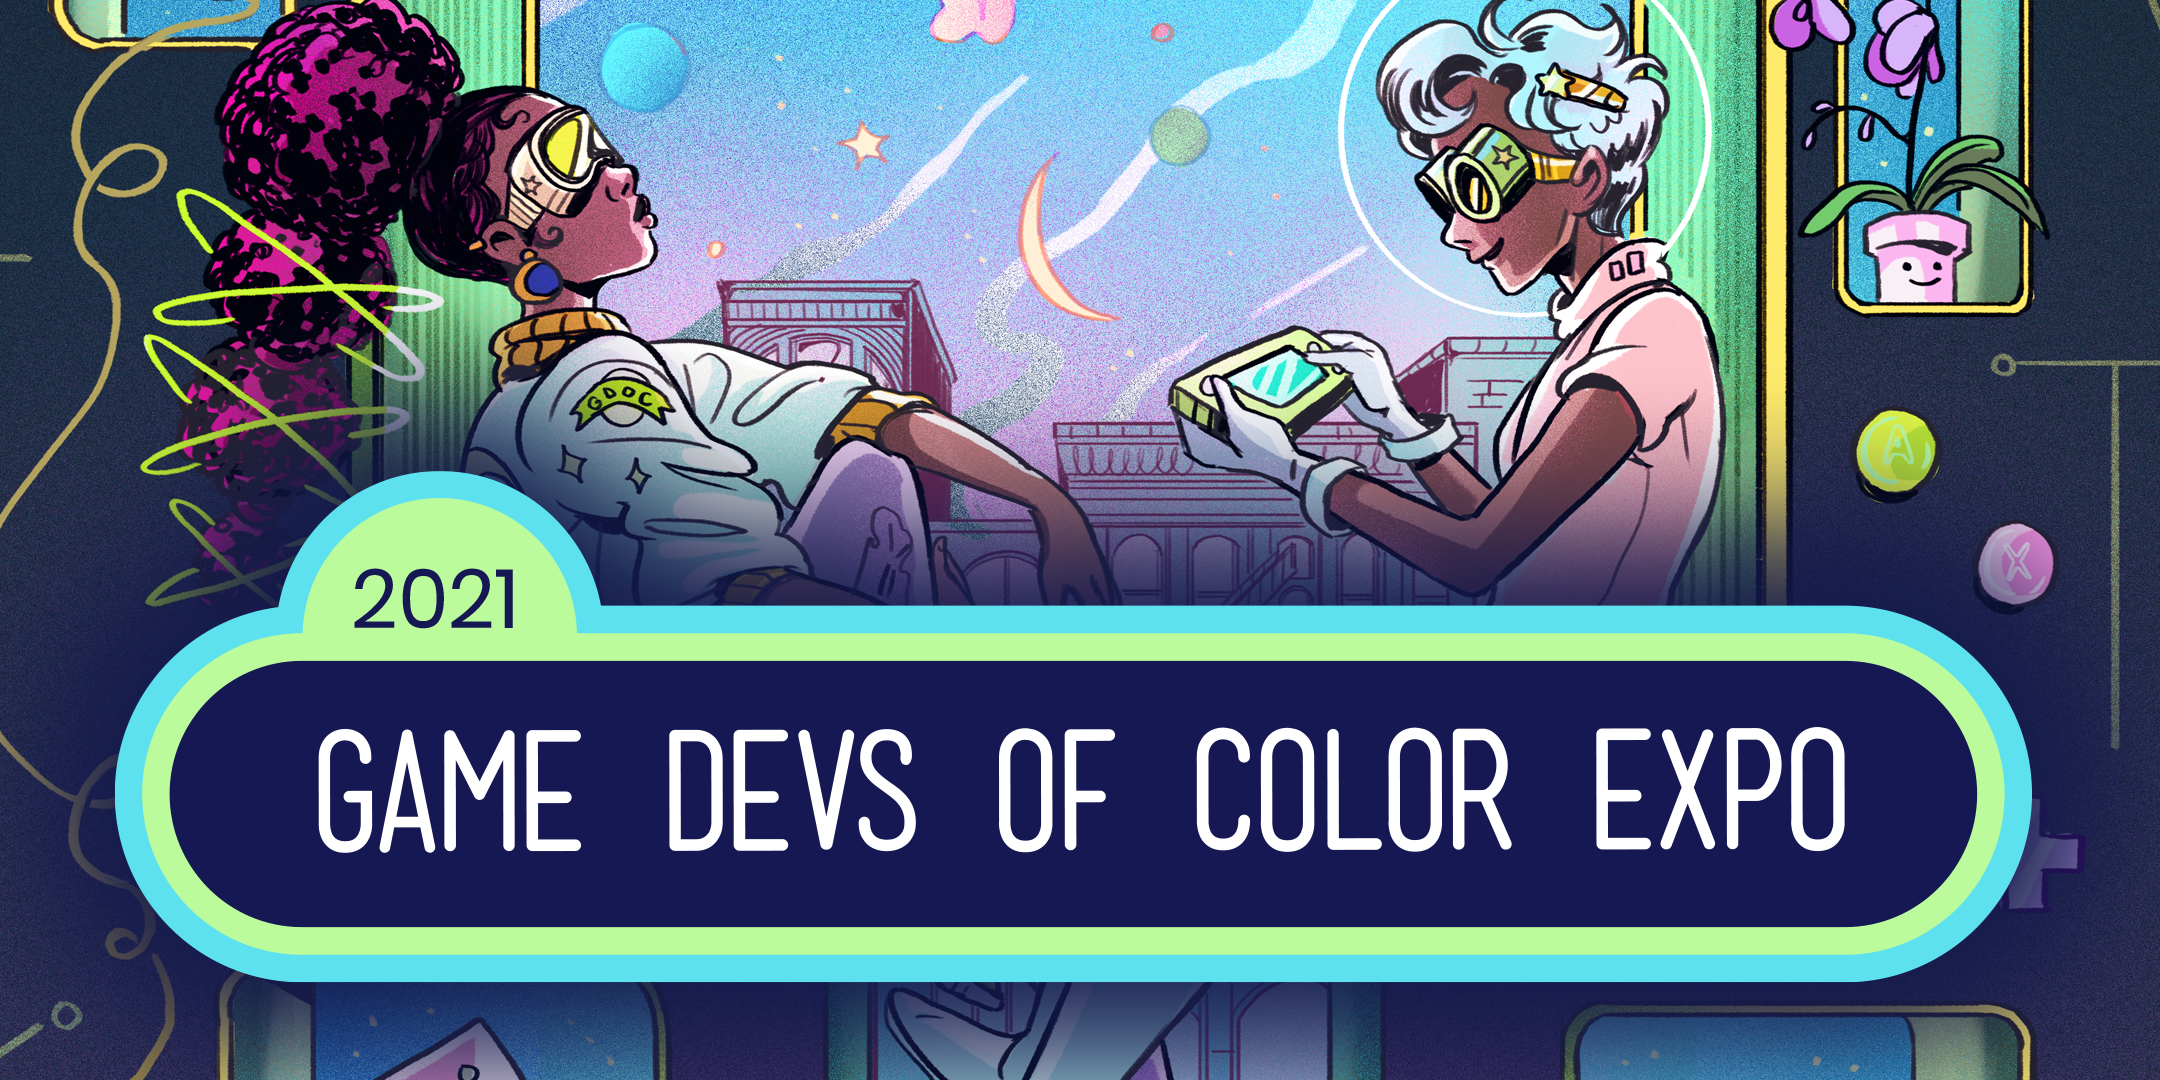 2021 Game Devs of Color Expo